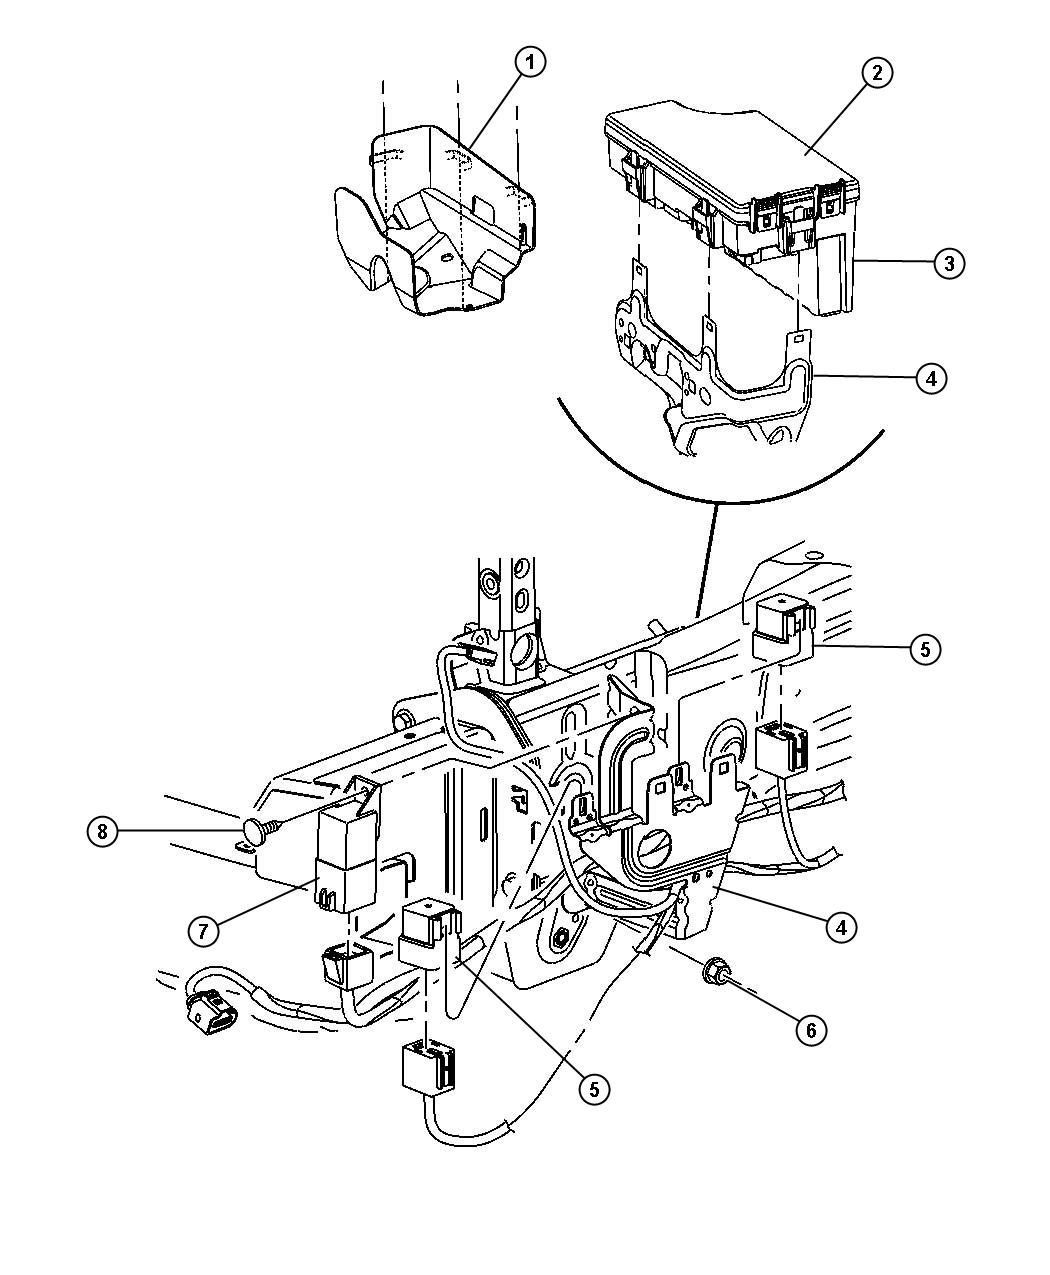 jeep patriot alternator location  jeep  get free image